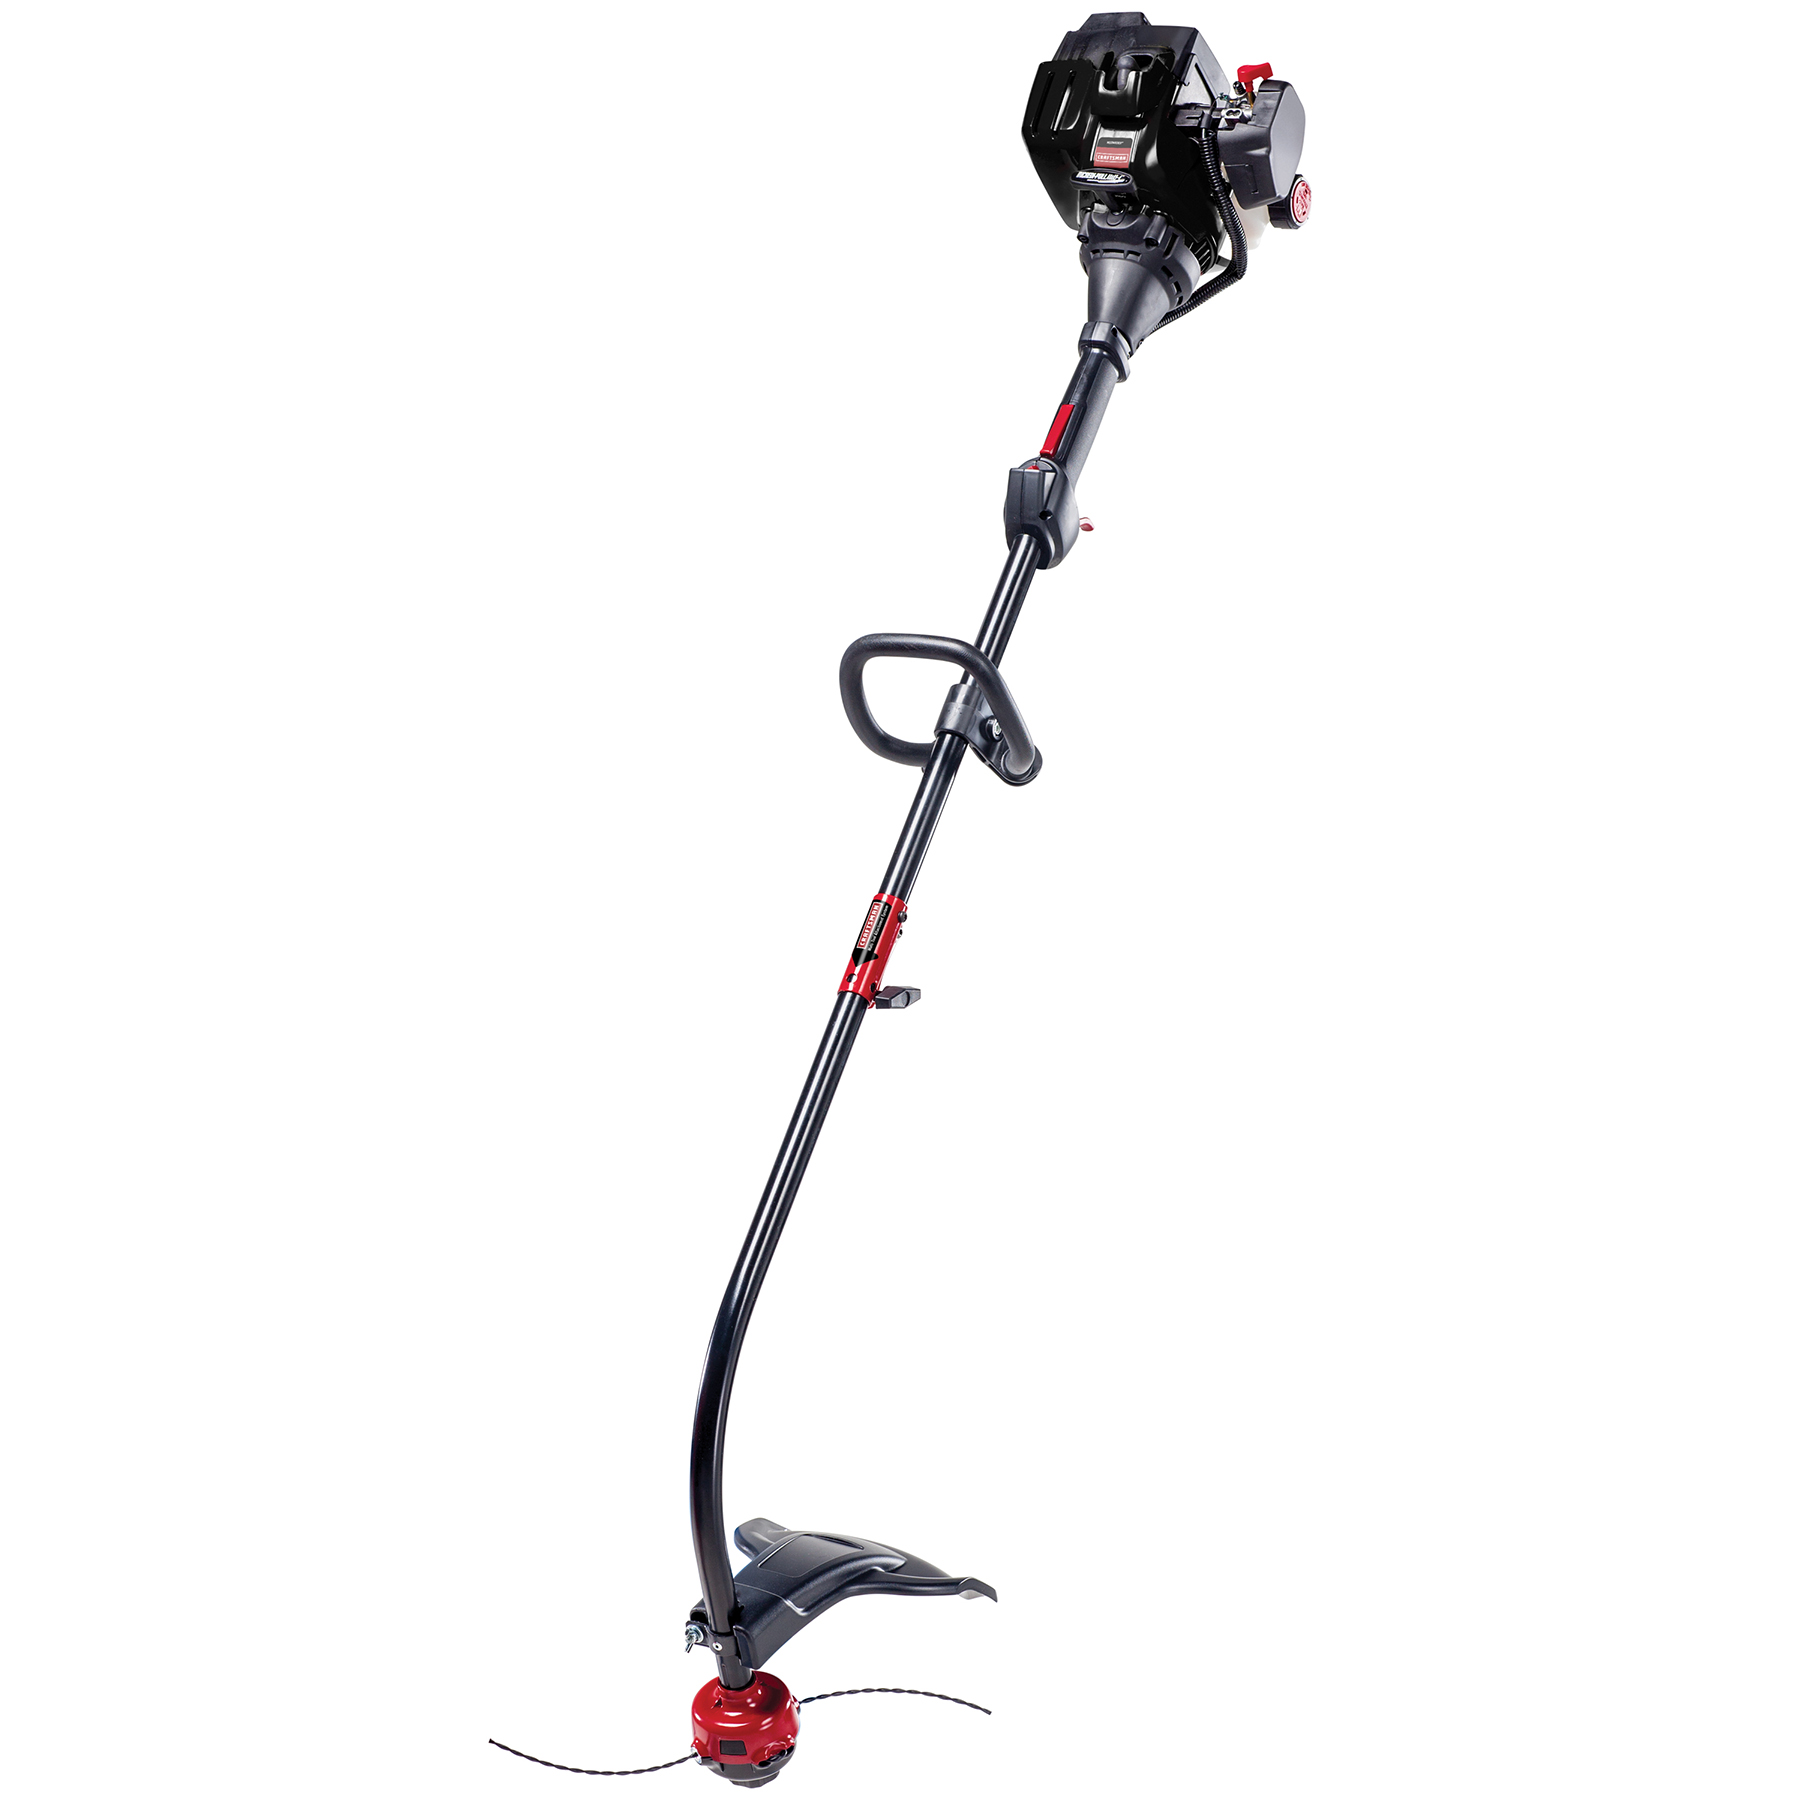 Craftsman 41EDZ20C799 25cc 2-Cycle Gas WeedWacker with